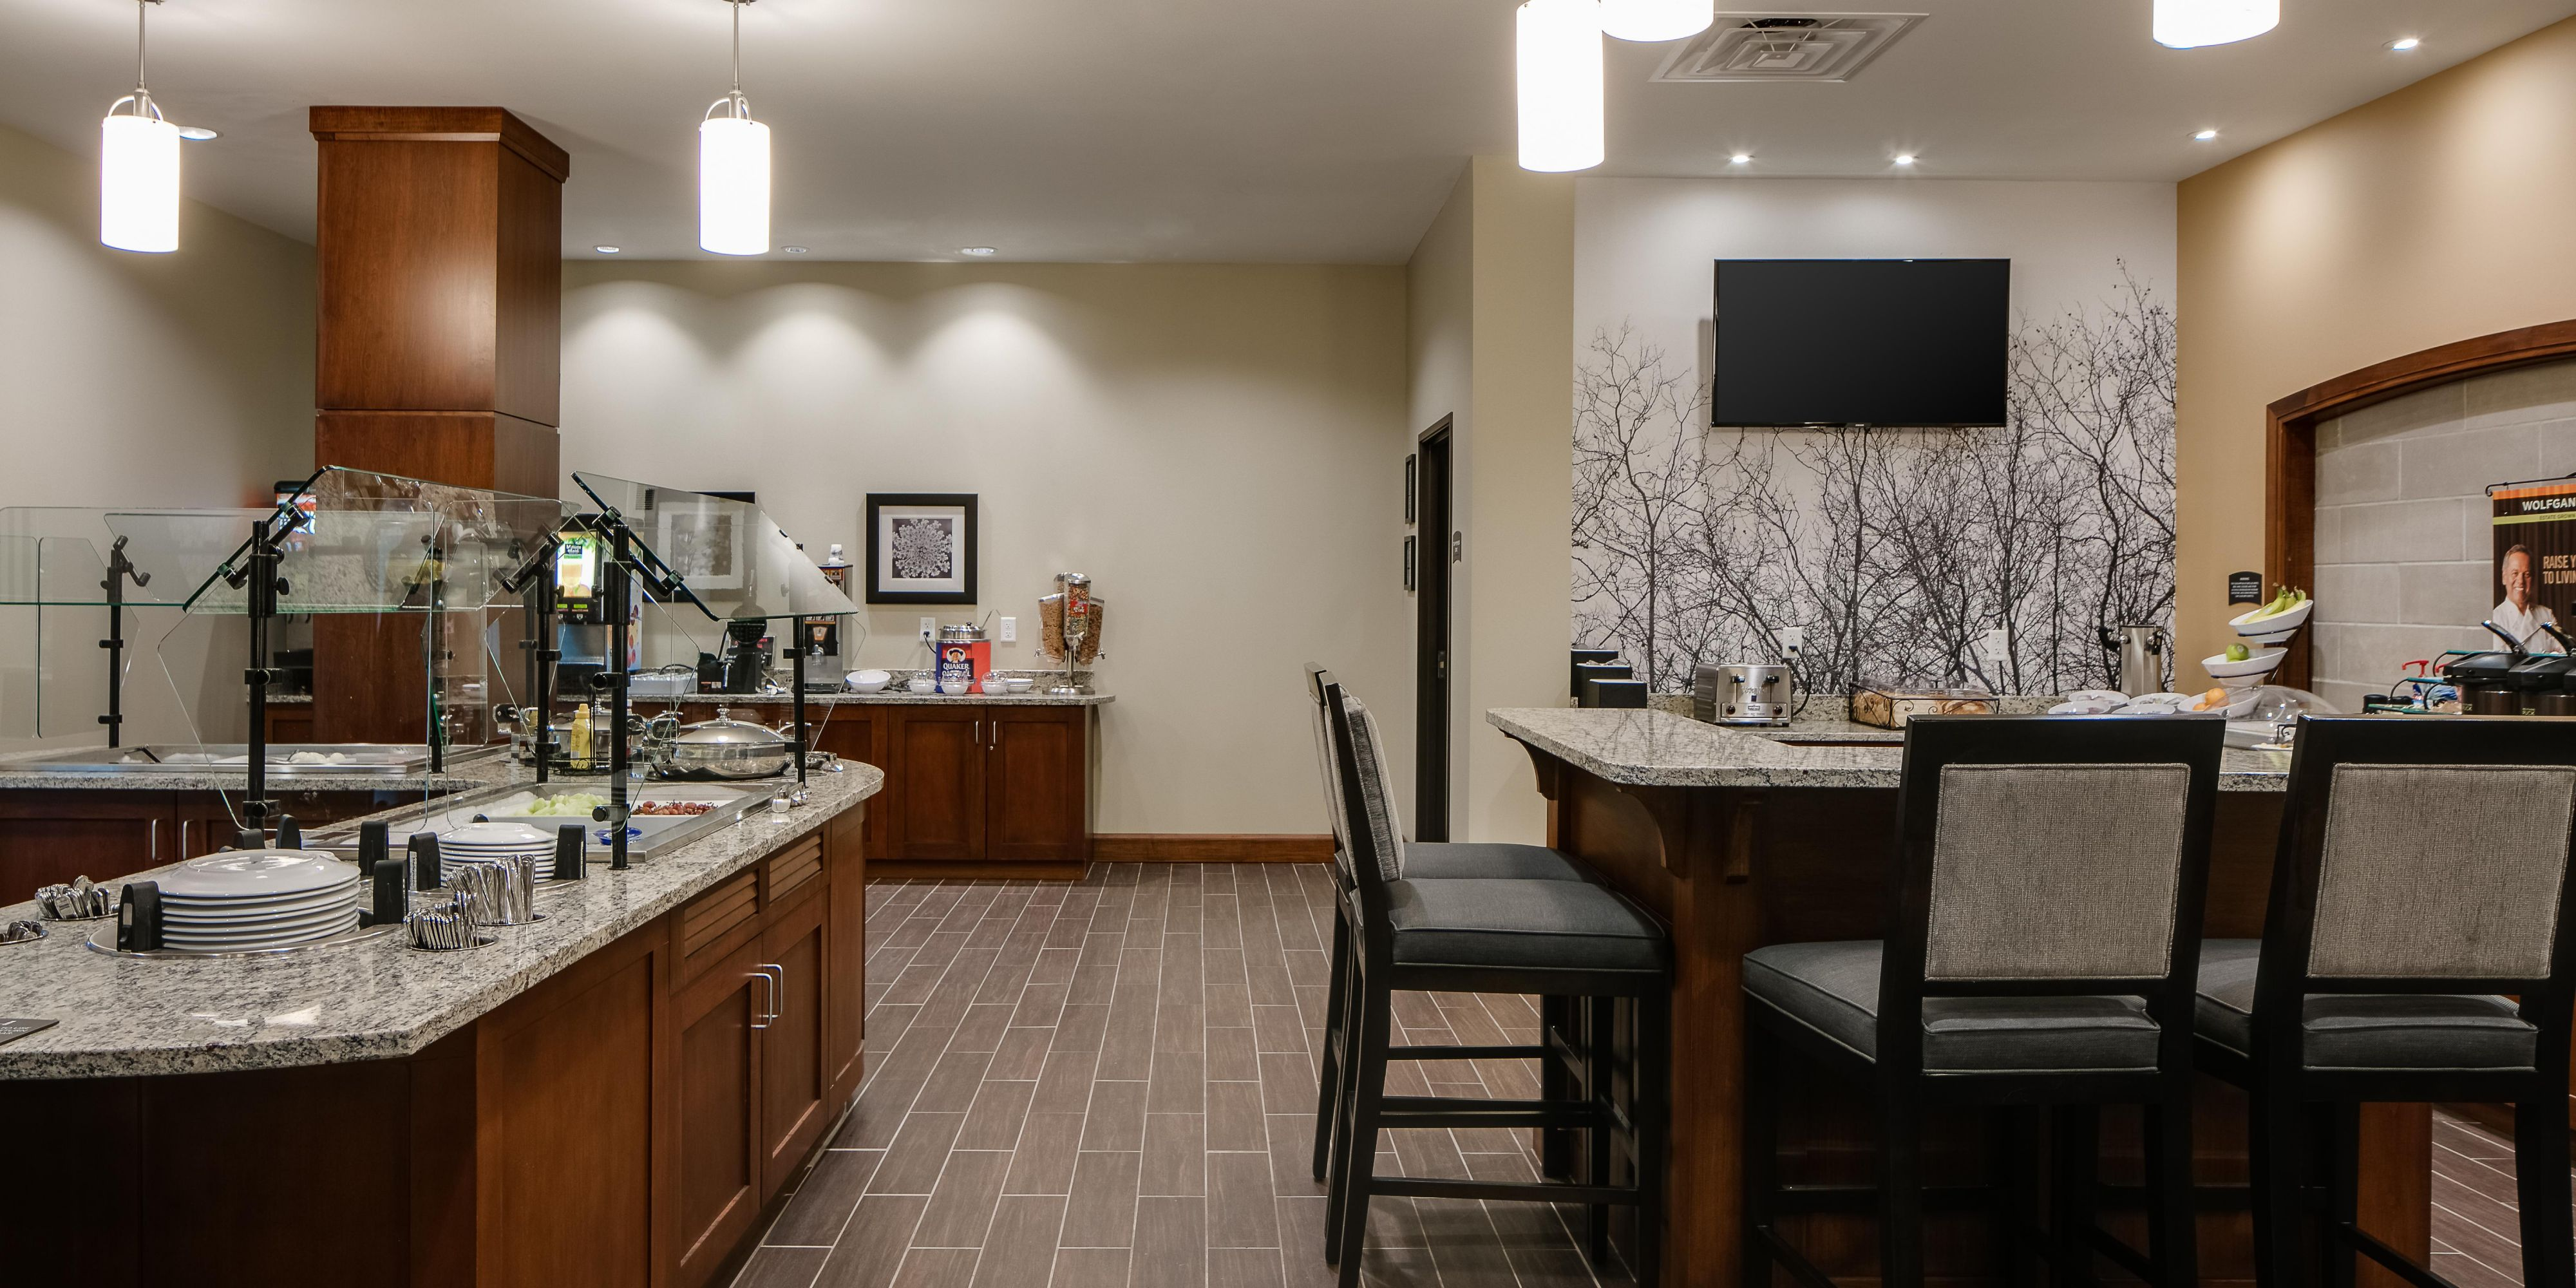 Hotels In Des Moines With Laundry Room